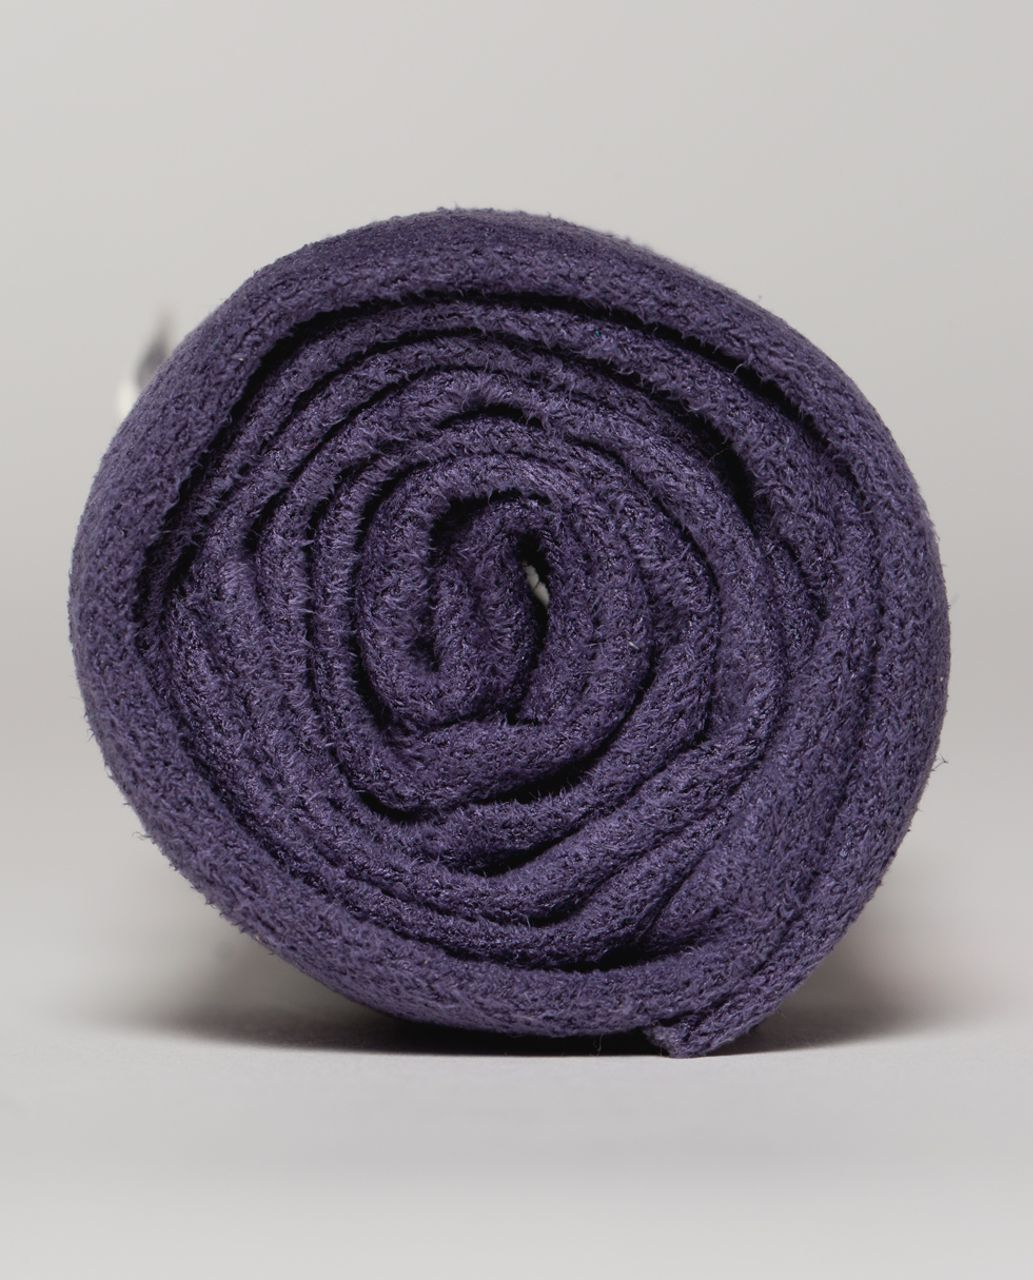 Lululemon The (Small) Towel - Nightfall